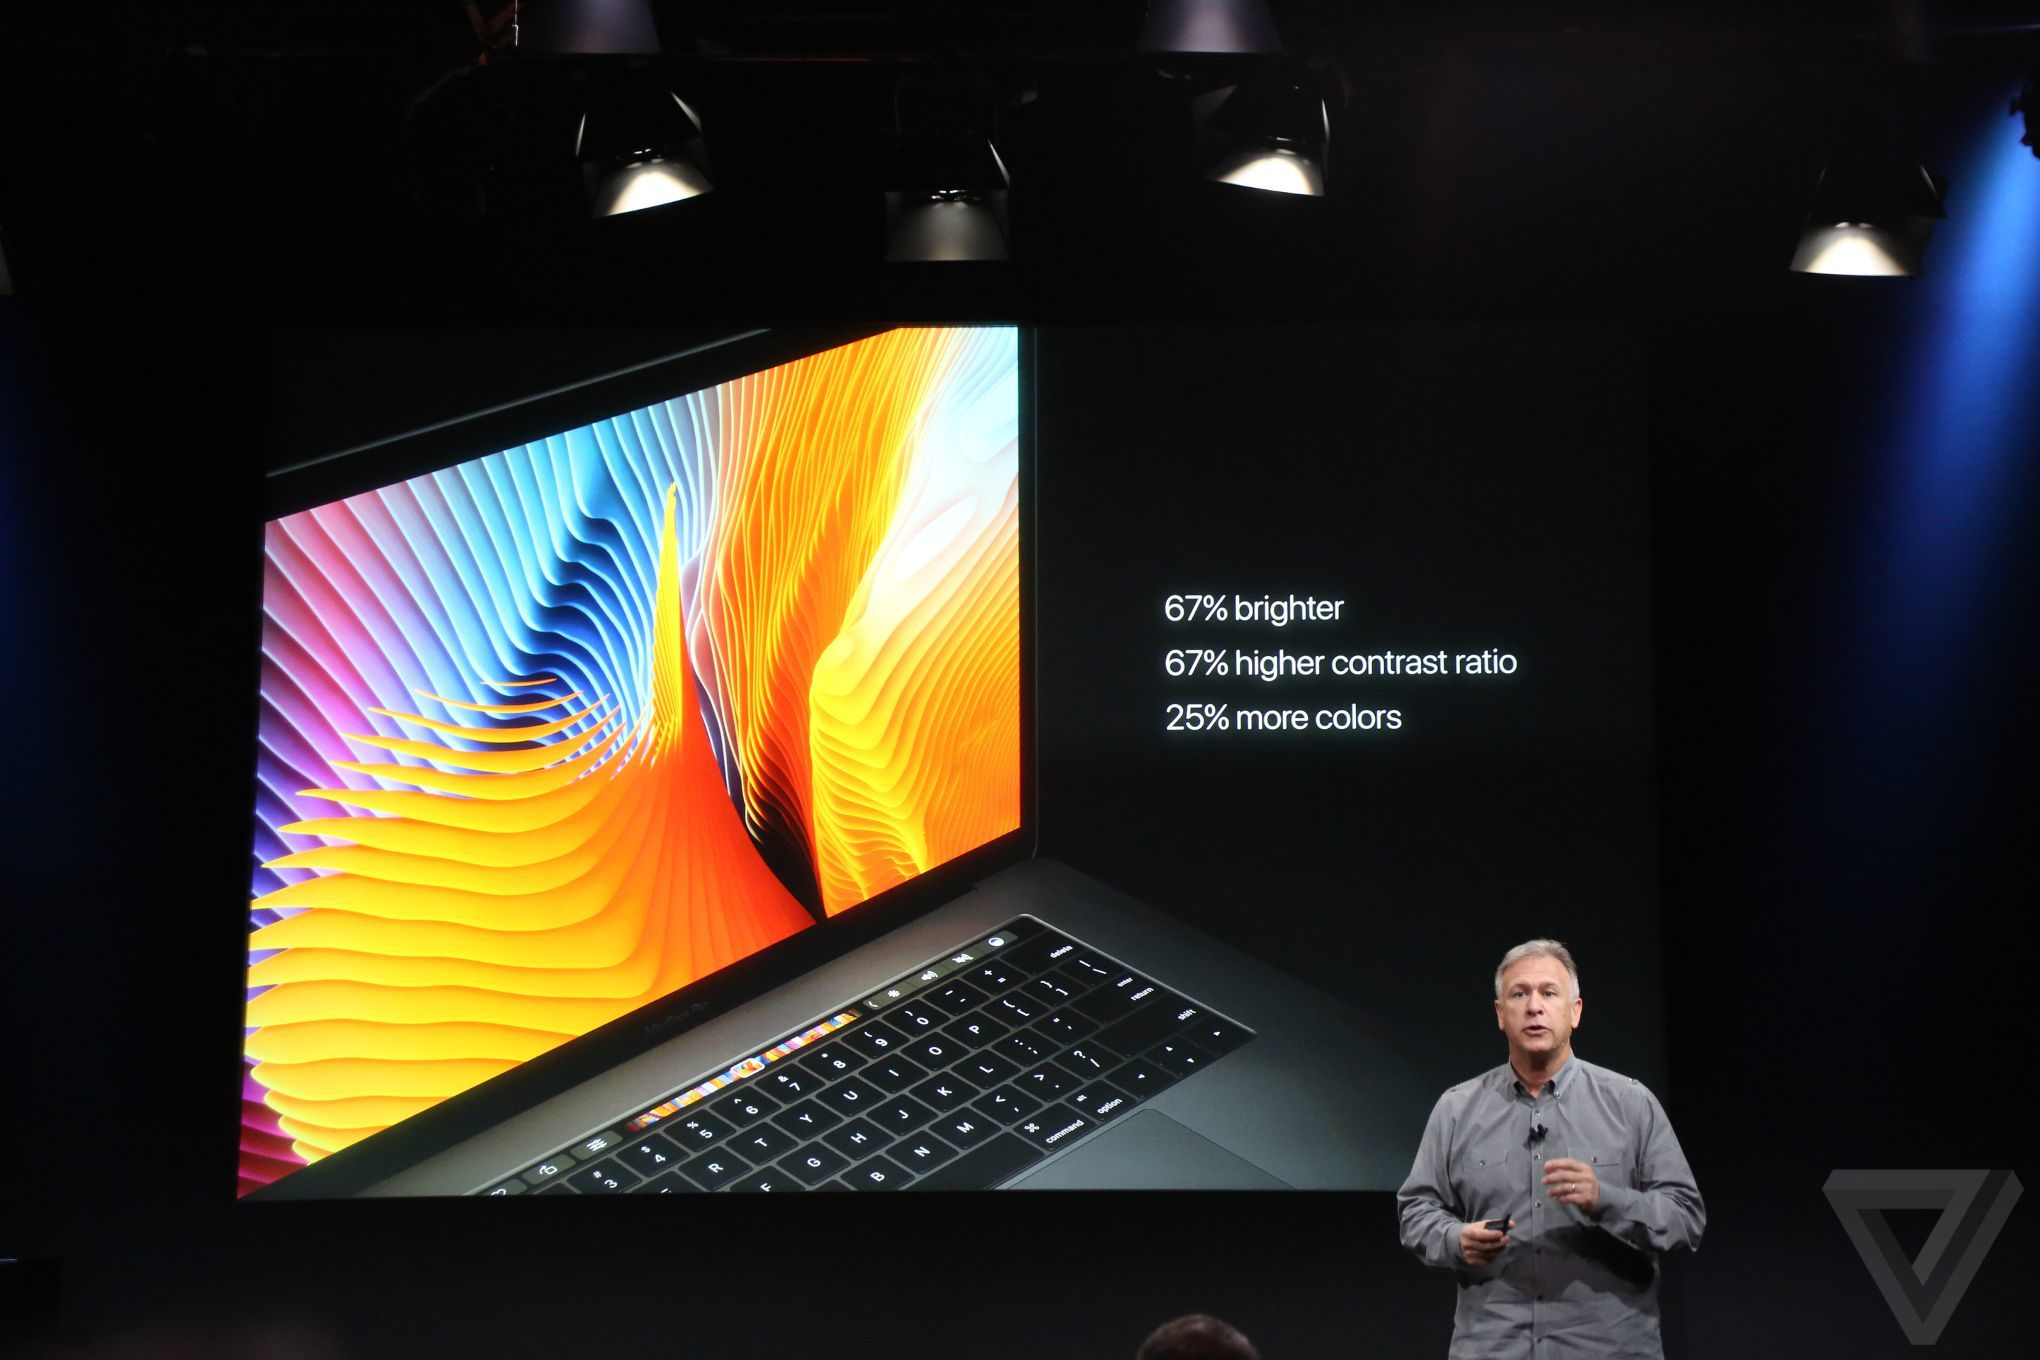 apple-macbook-event-20161027-8408